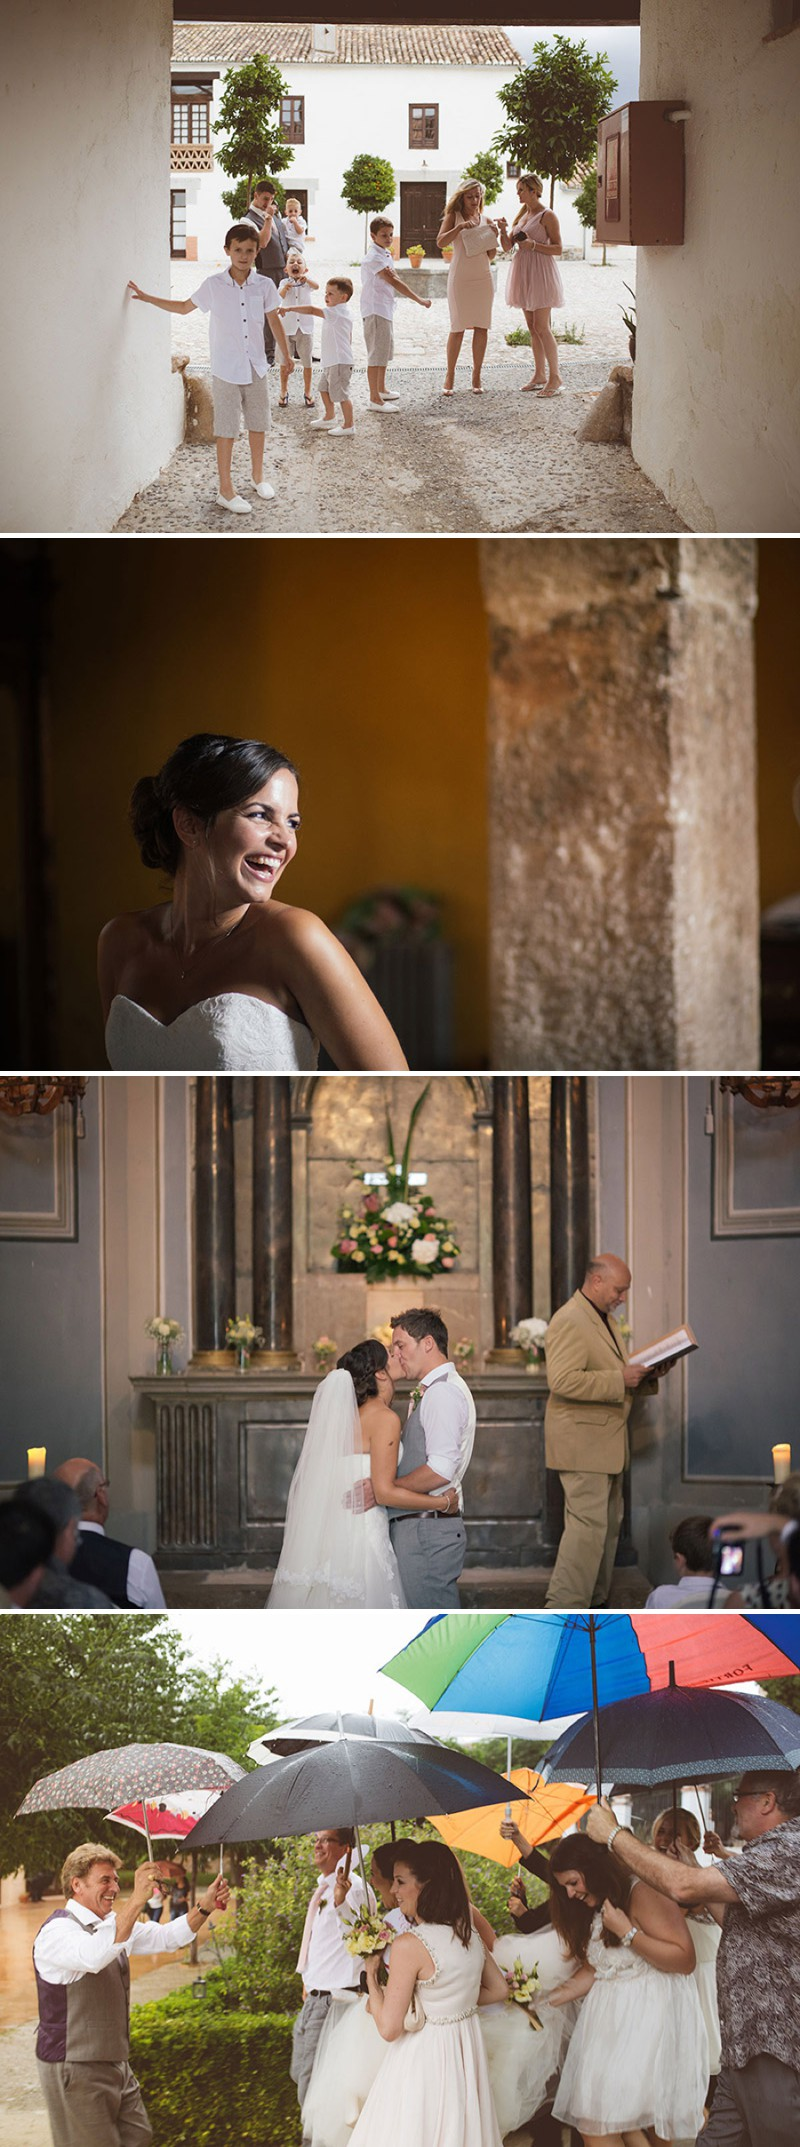 A Spanish Destination Wedding At Cortijo del Marques In Granada With A Emma Victoria Payne Wedding Dress Photographed By Joseph Hall Photography._0005